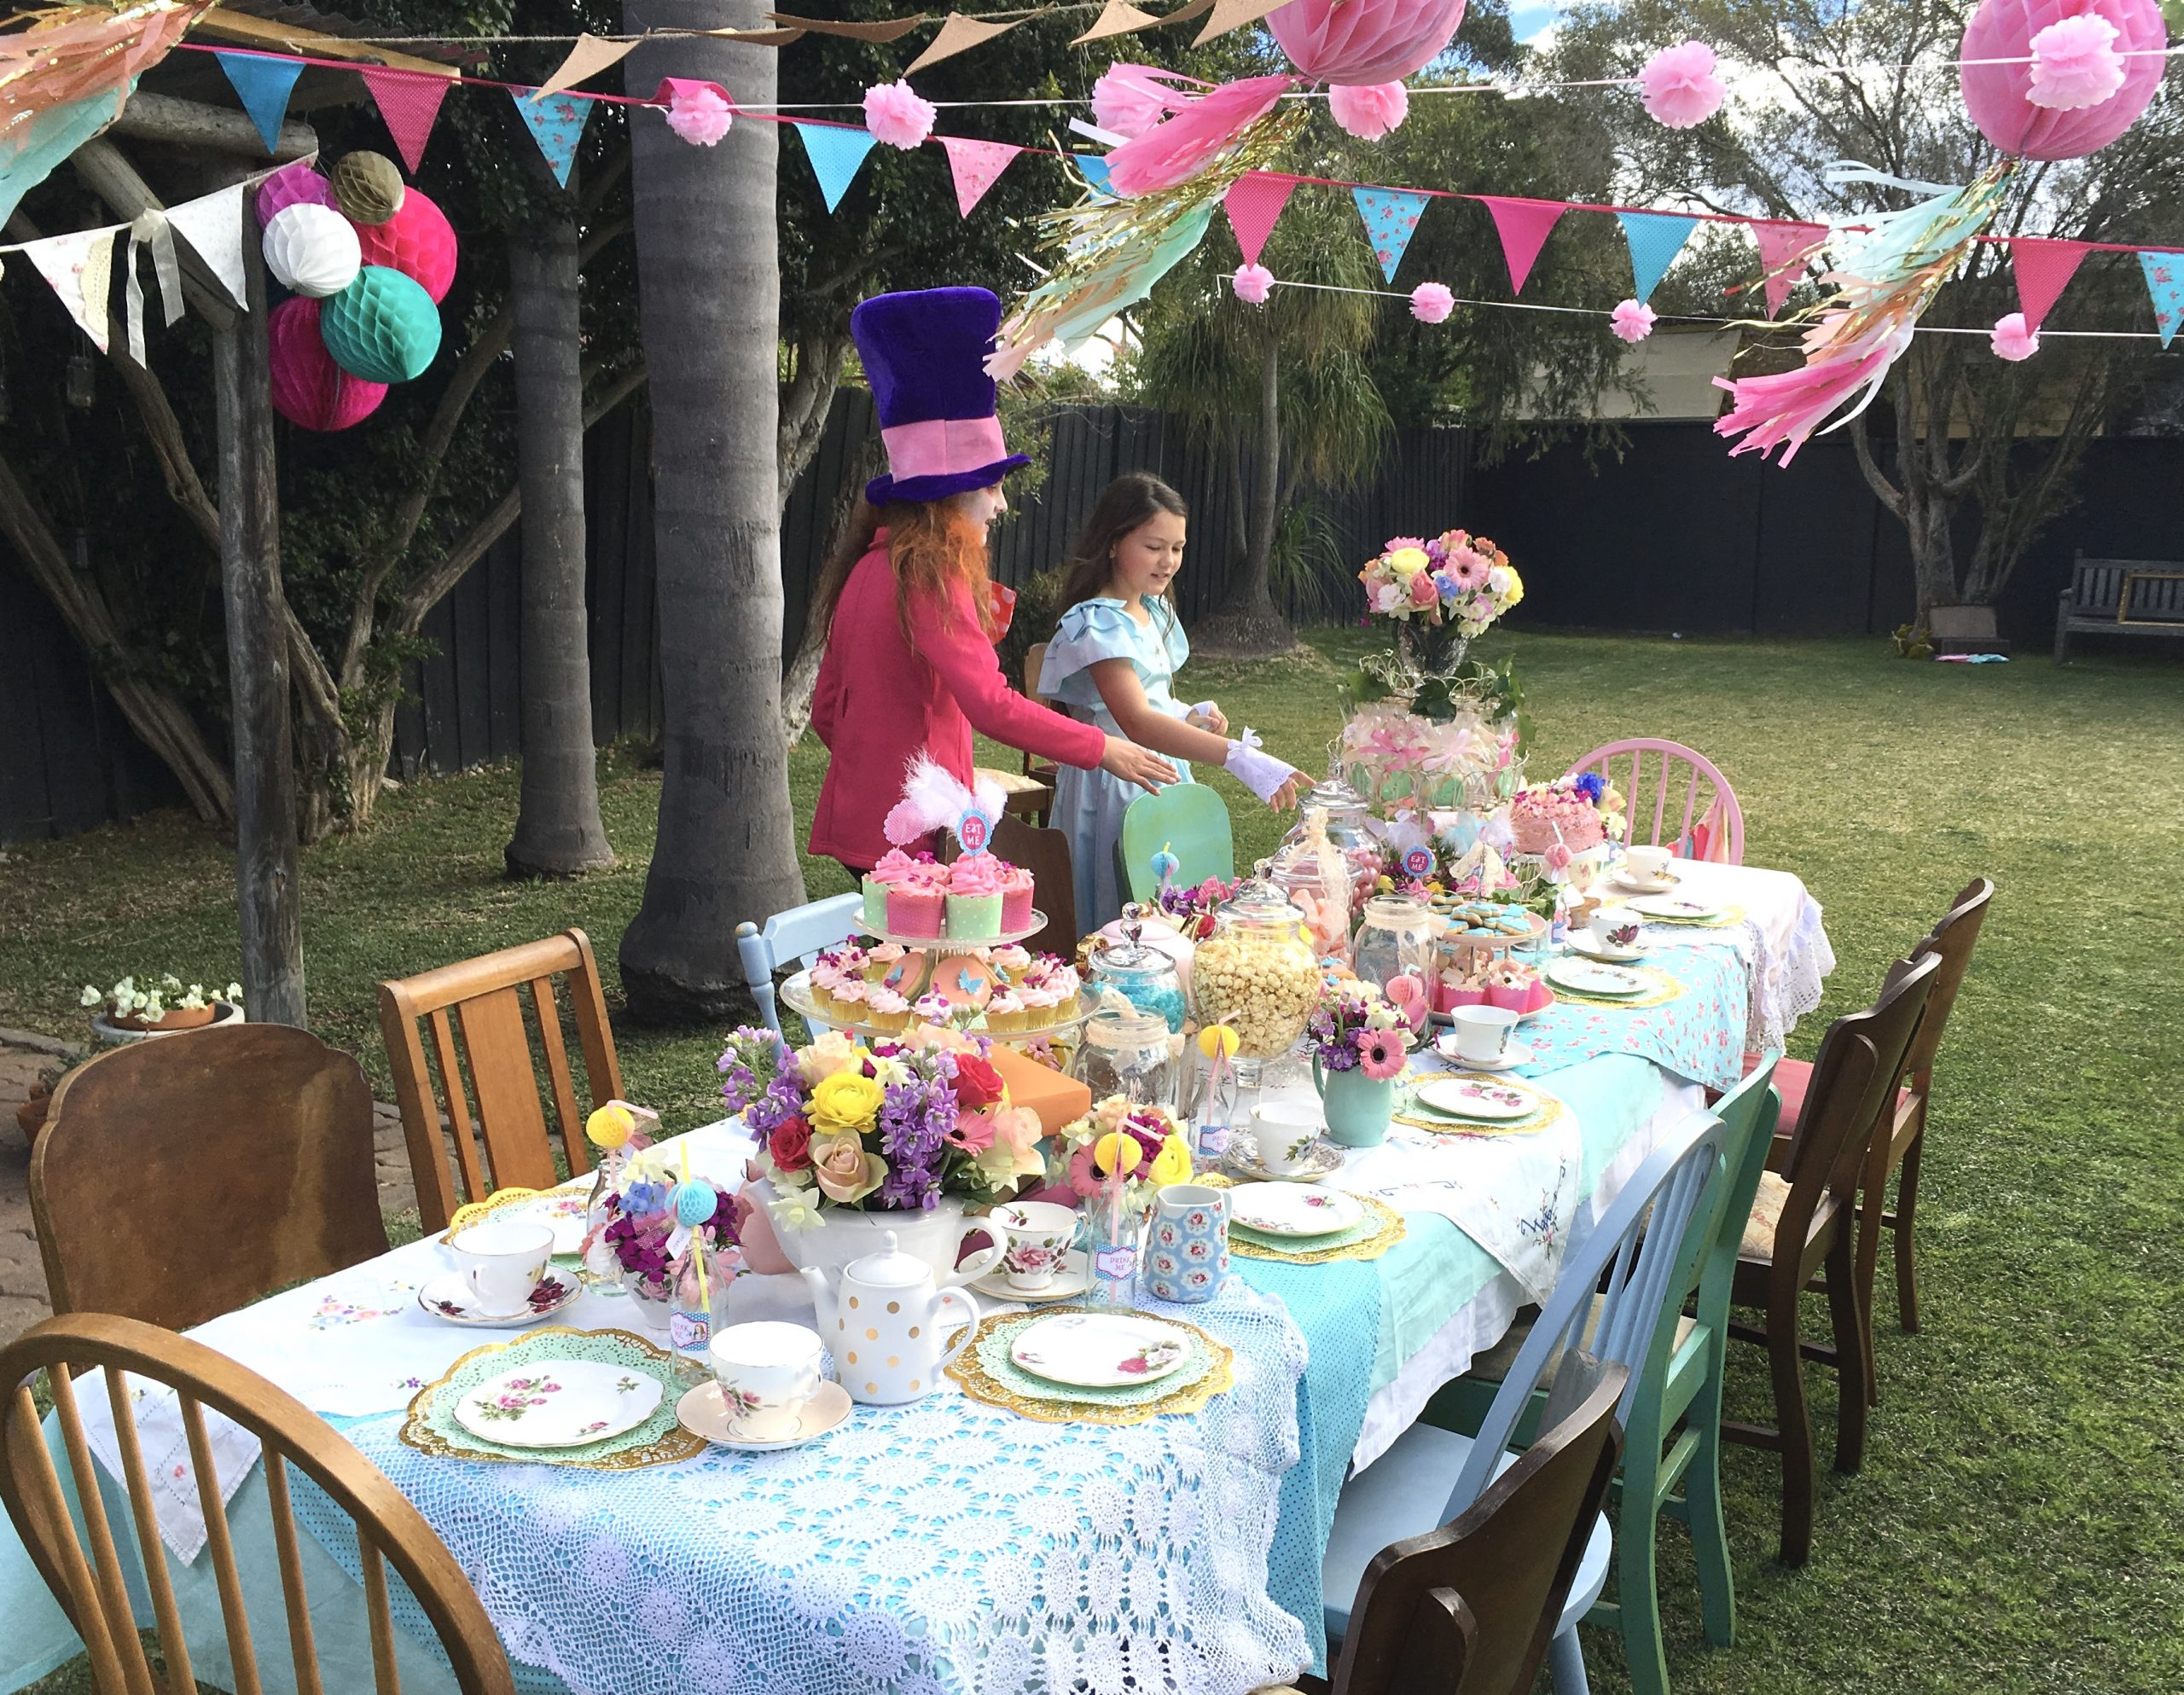 Stacey Lee How to plan the ultimate kids party